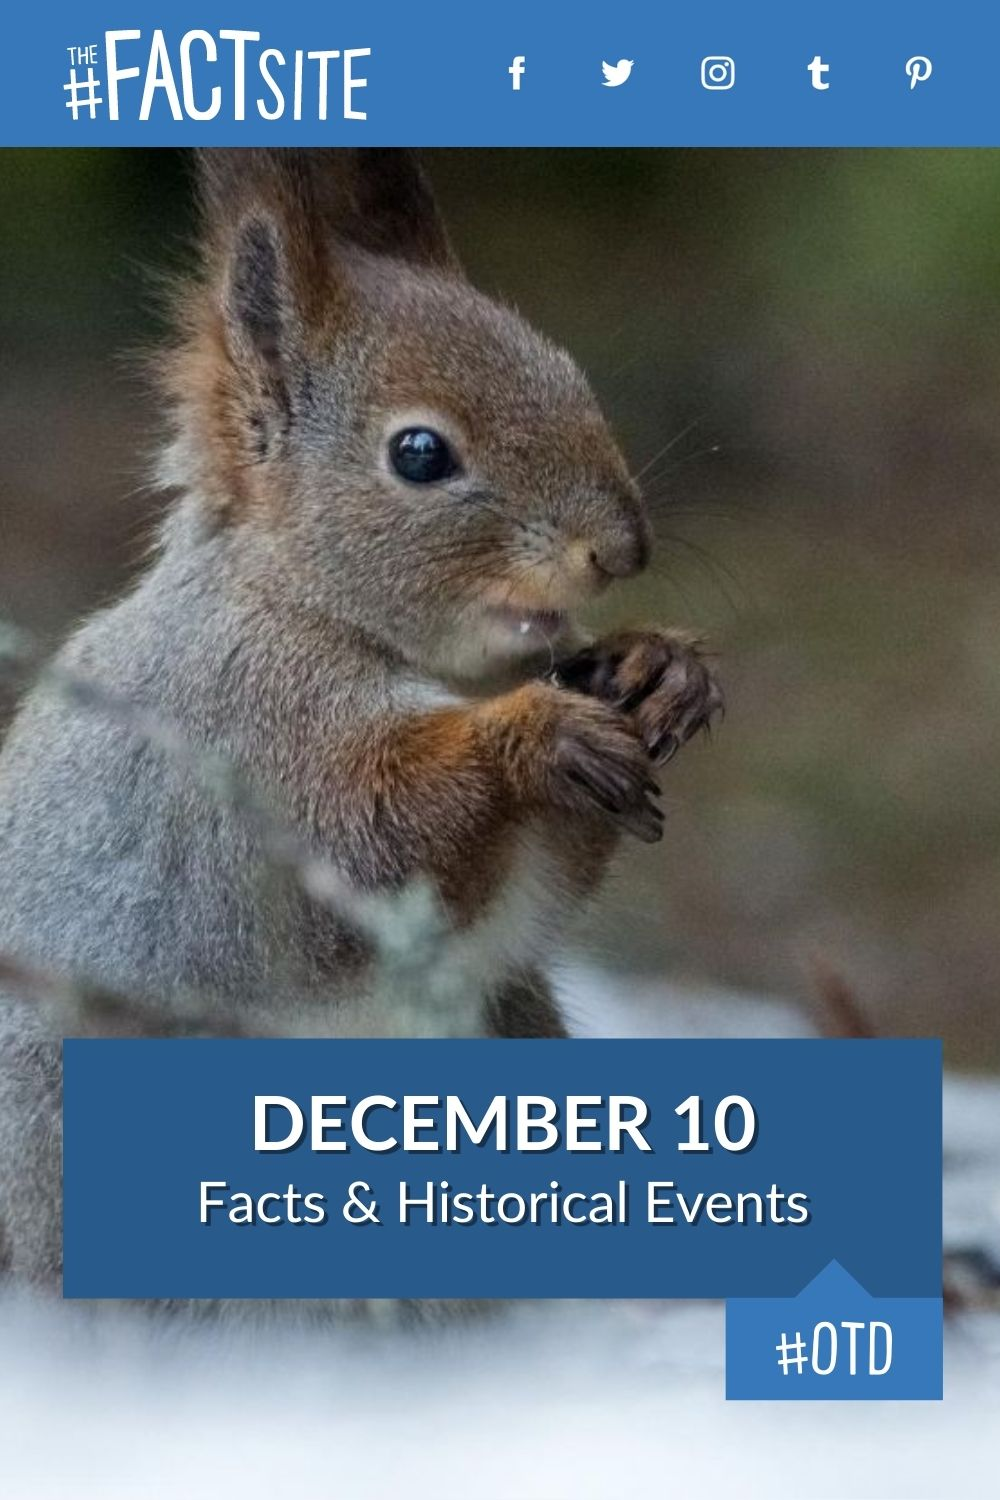 Facts & Historic Events That Happened on December 10